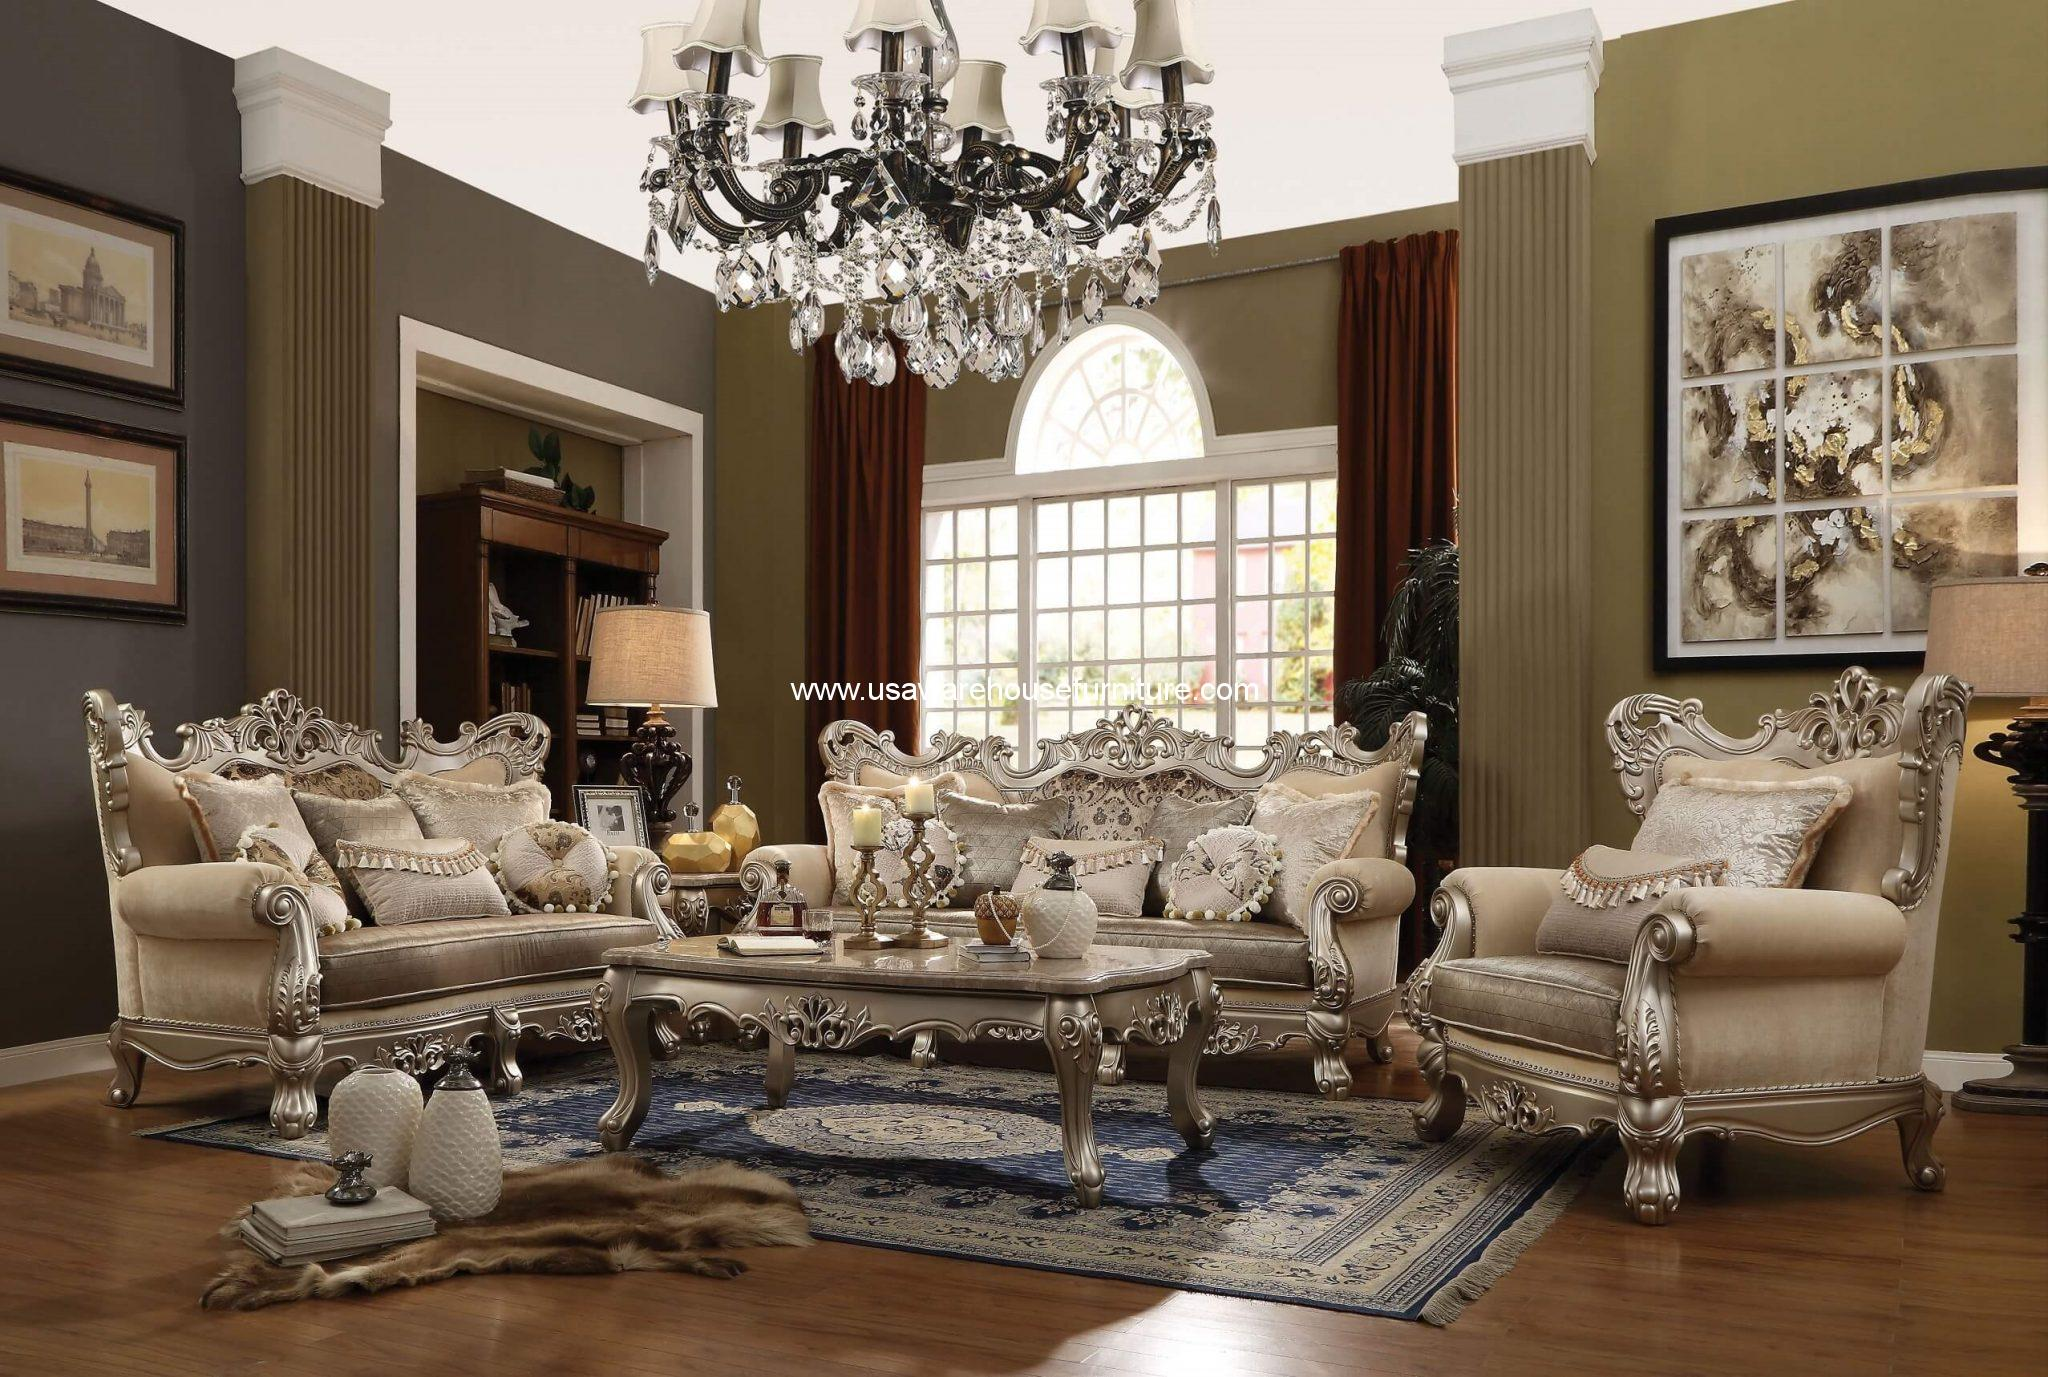 Ranita Wood Trim Living Room Set - USA Warehouse Furniture